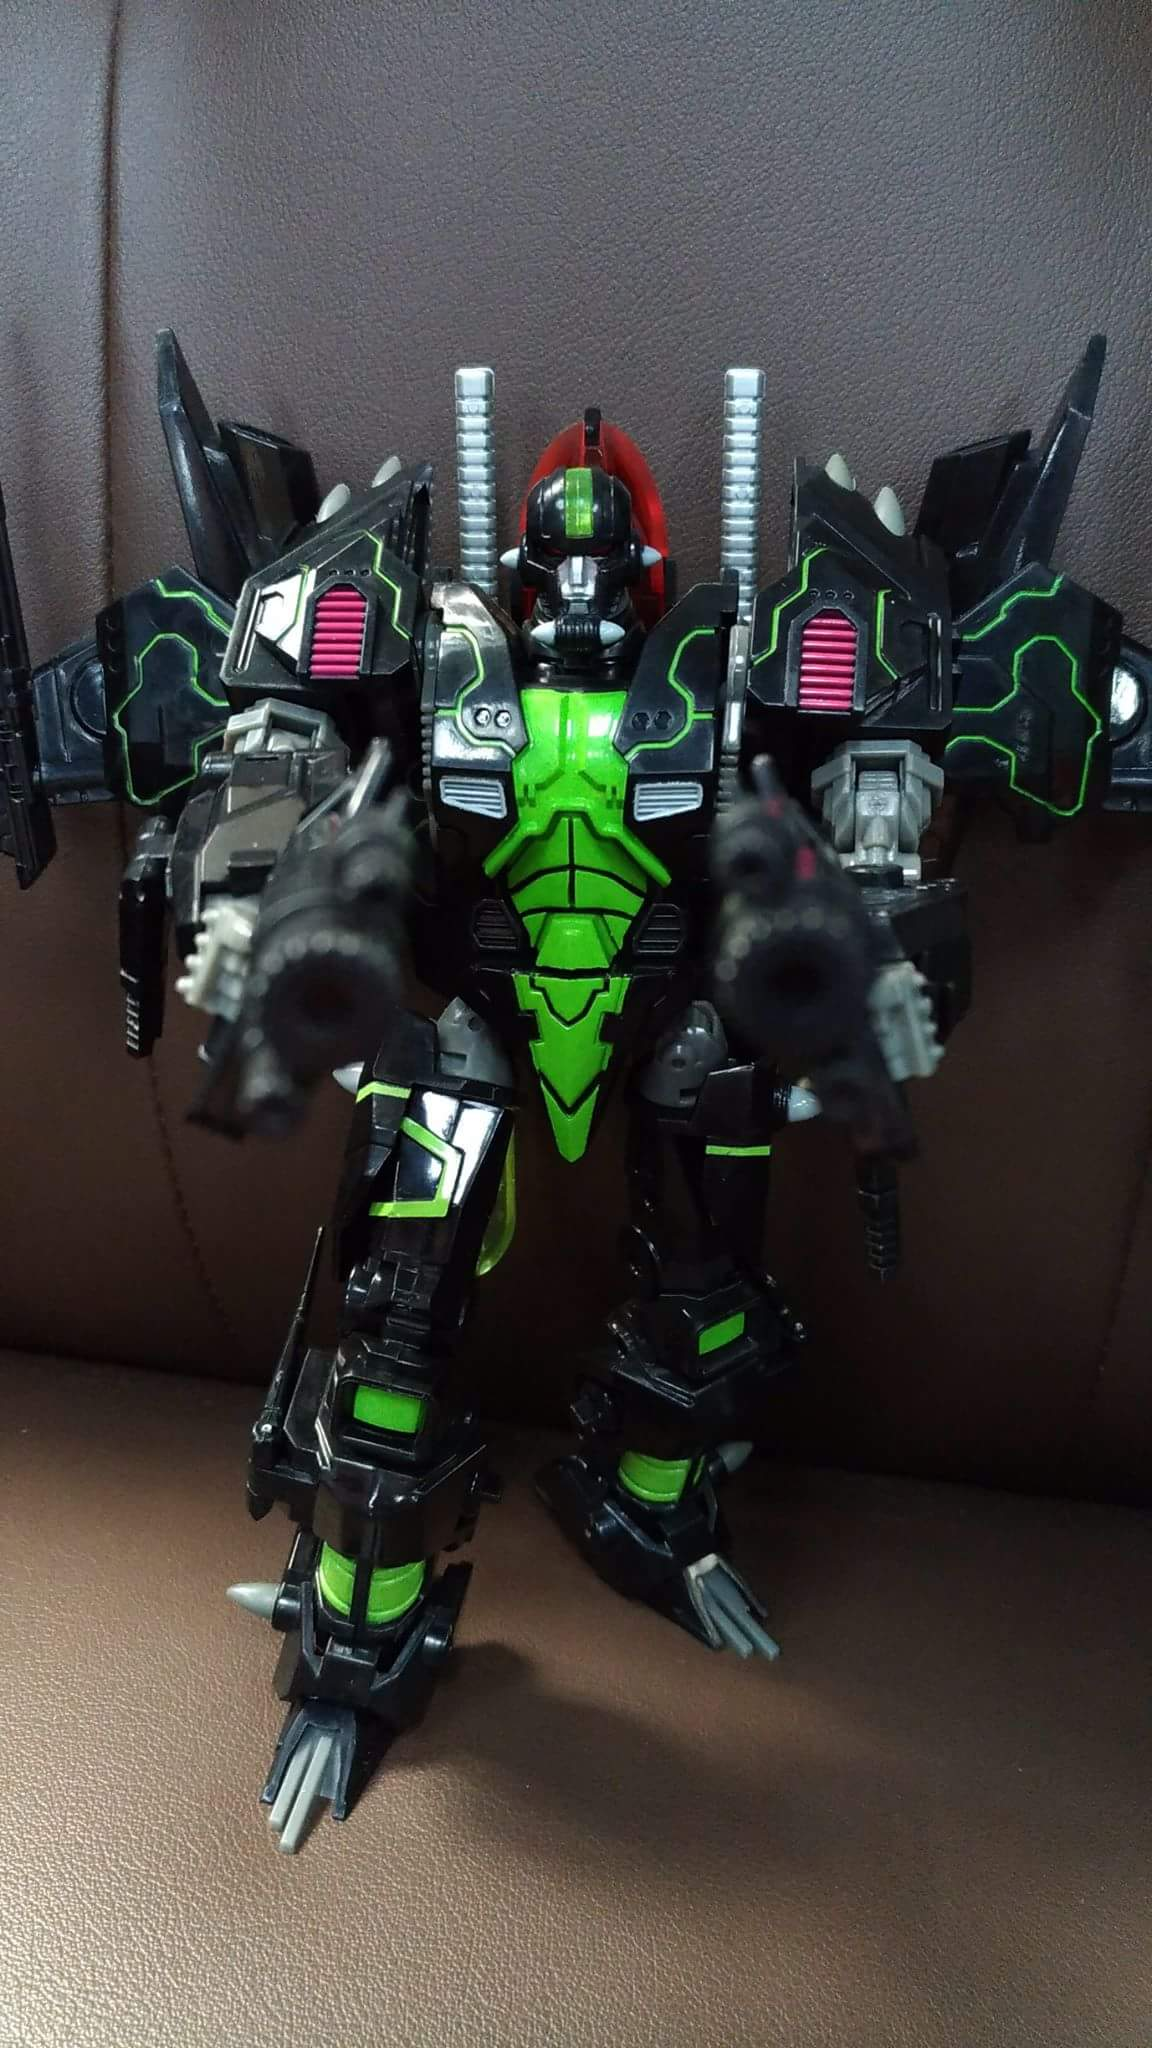 [Mastermind Creations] Produit Tiers - R-15 Jaegertron - aka Lockdown des BD IDW - Page 2 JfulZ52k